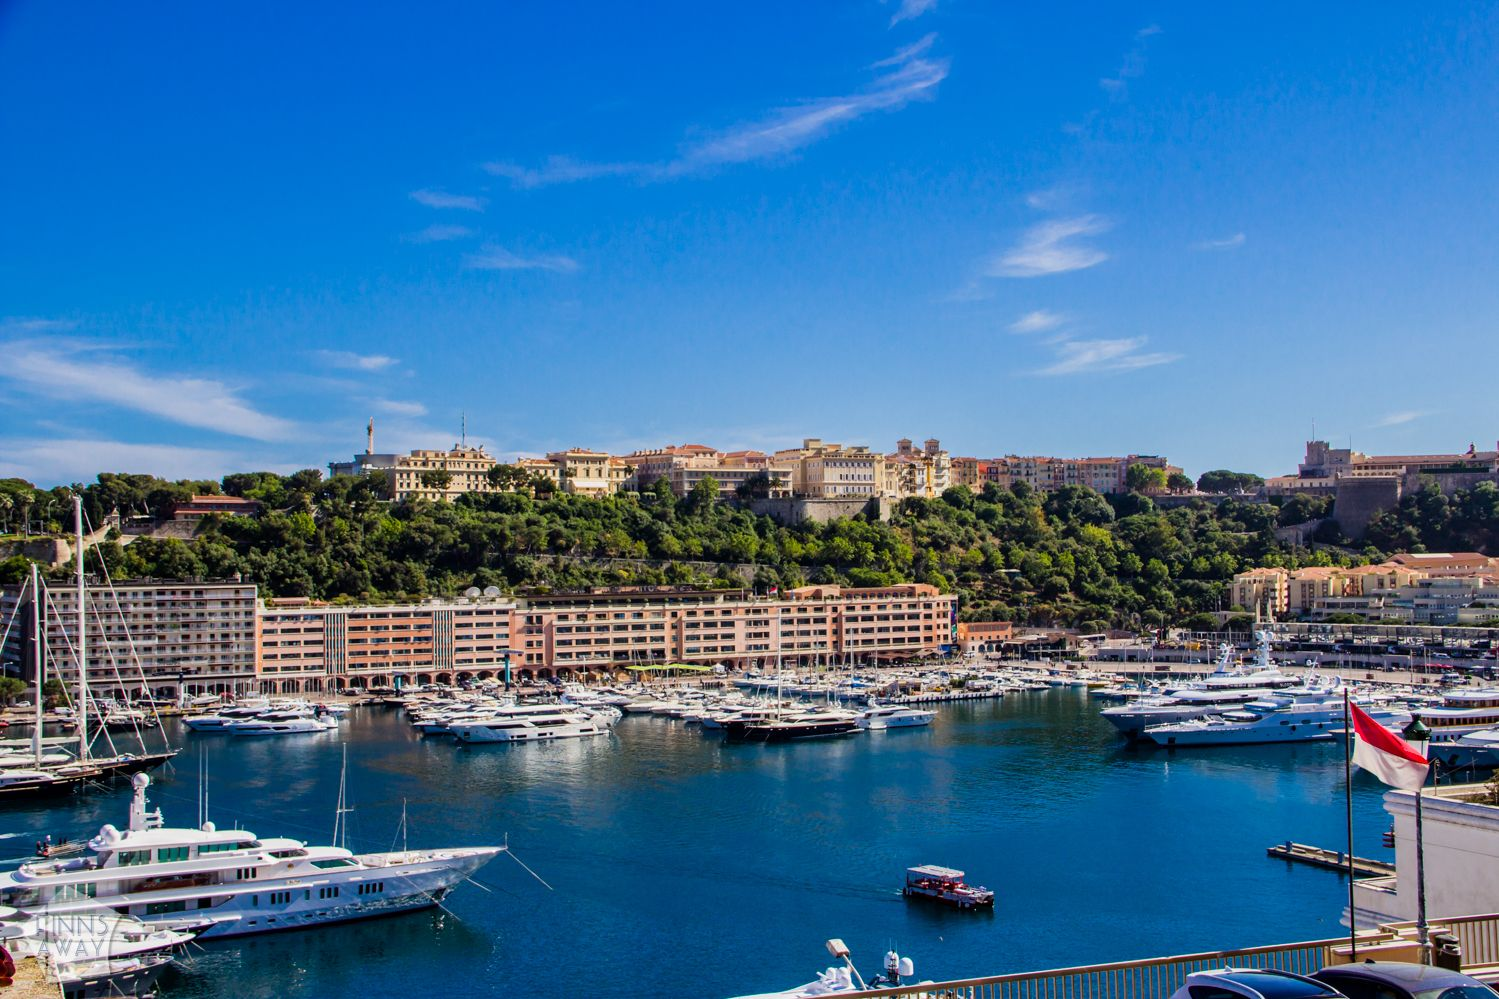 Introducing the tiny, wealthy and luxurious Monaco in French Riviera. | FinnsAway Travel Blog